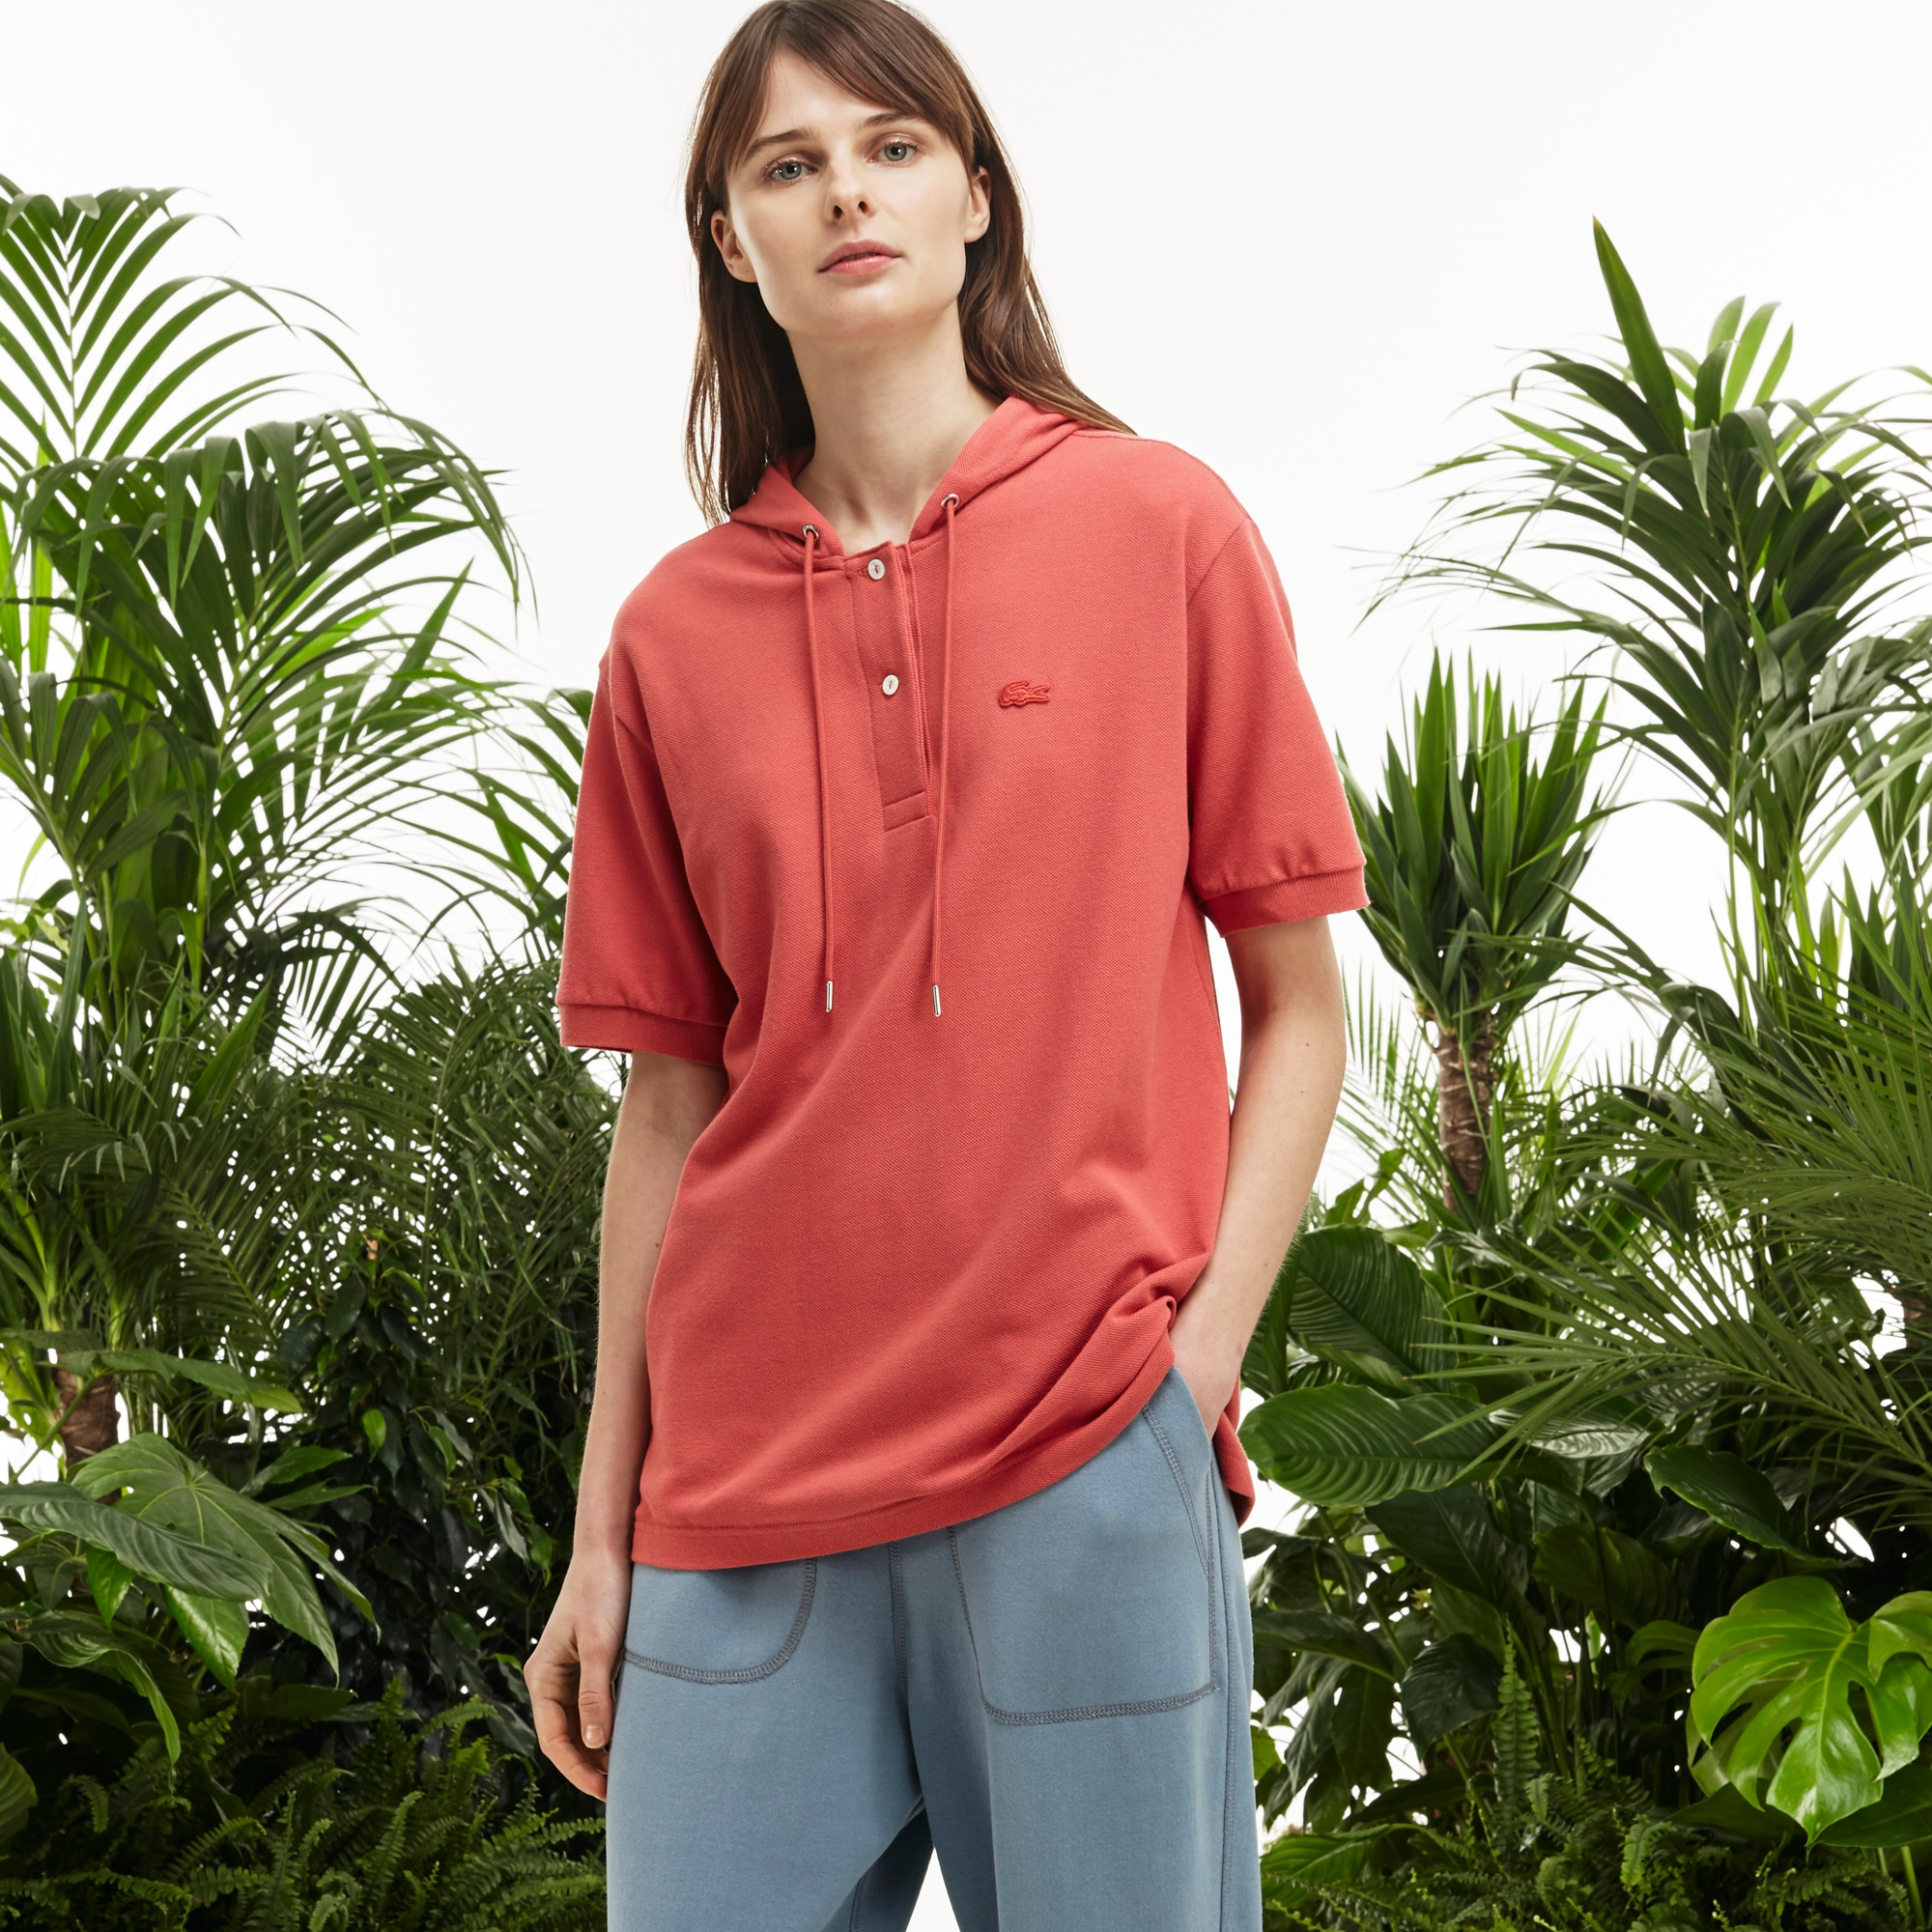 Women's Fashion Show Hooded Pleated Panel Polo Shirt